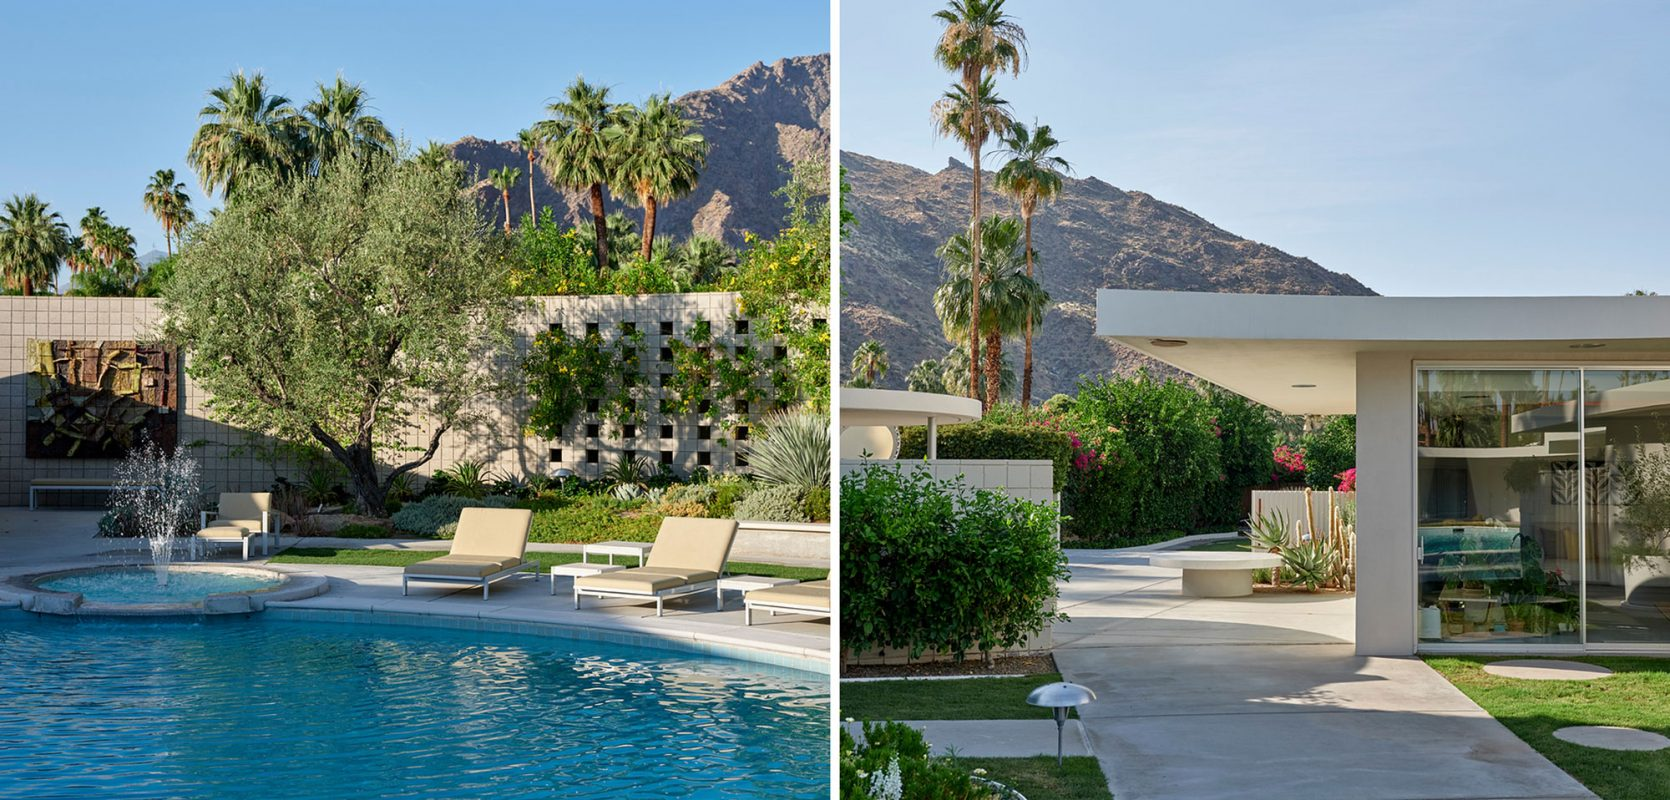 diptych: (left) lounge chairs along inground pool with trees and mountains in the background; (right) concrete walkway with cantilevered roof to backyard